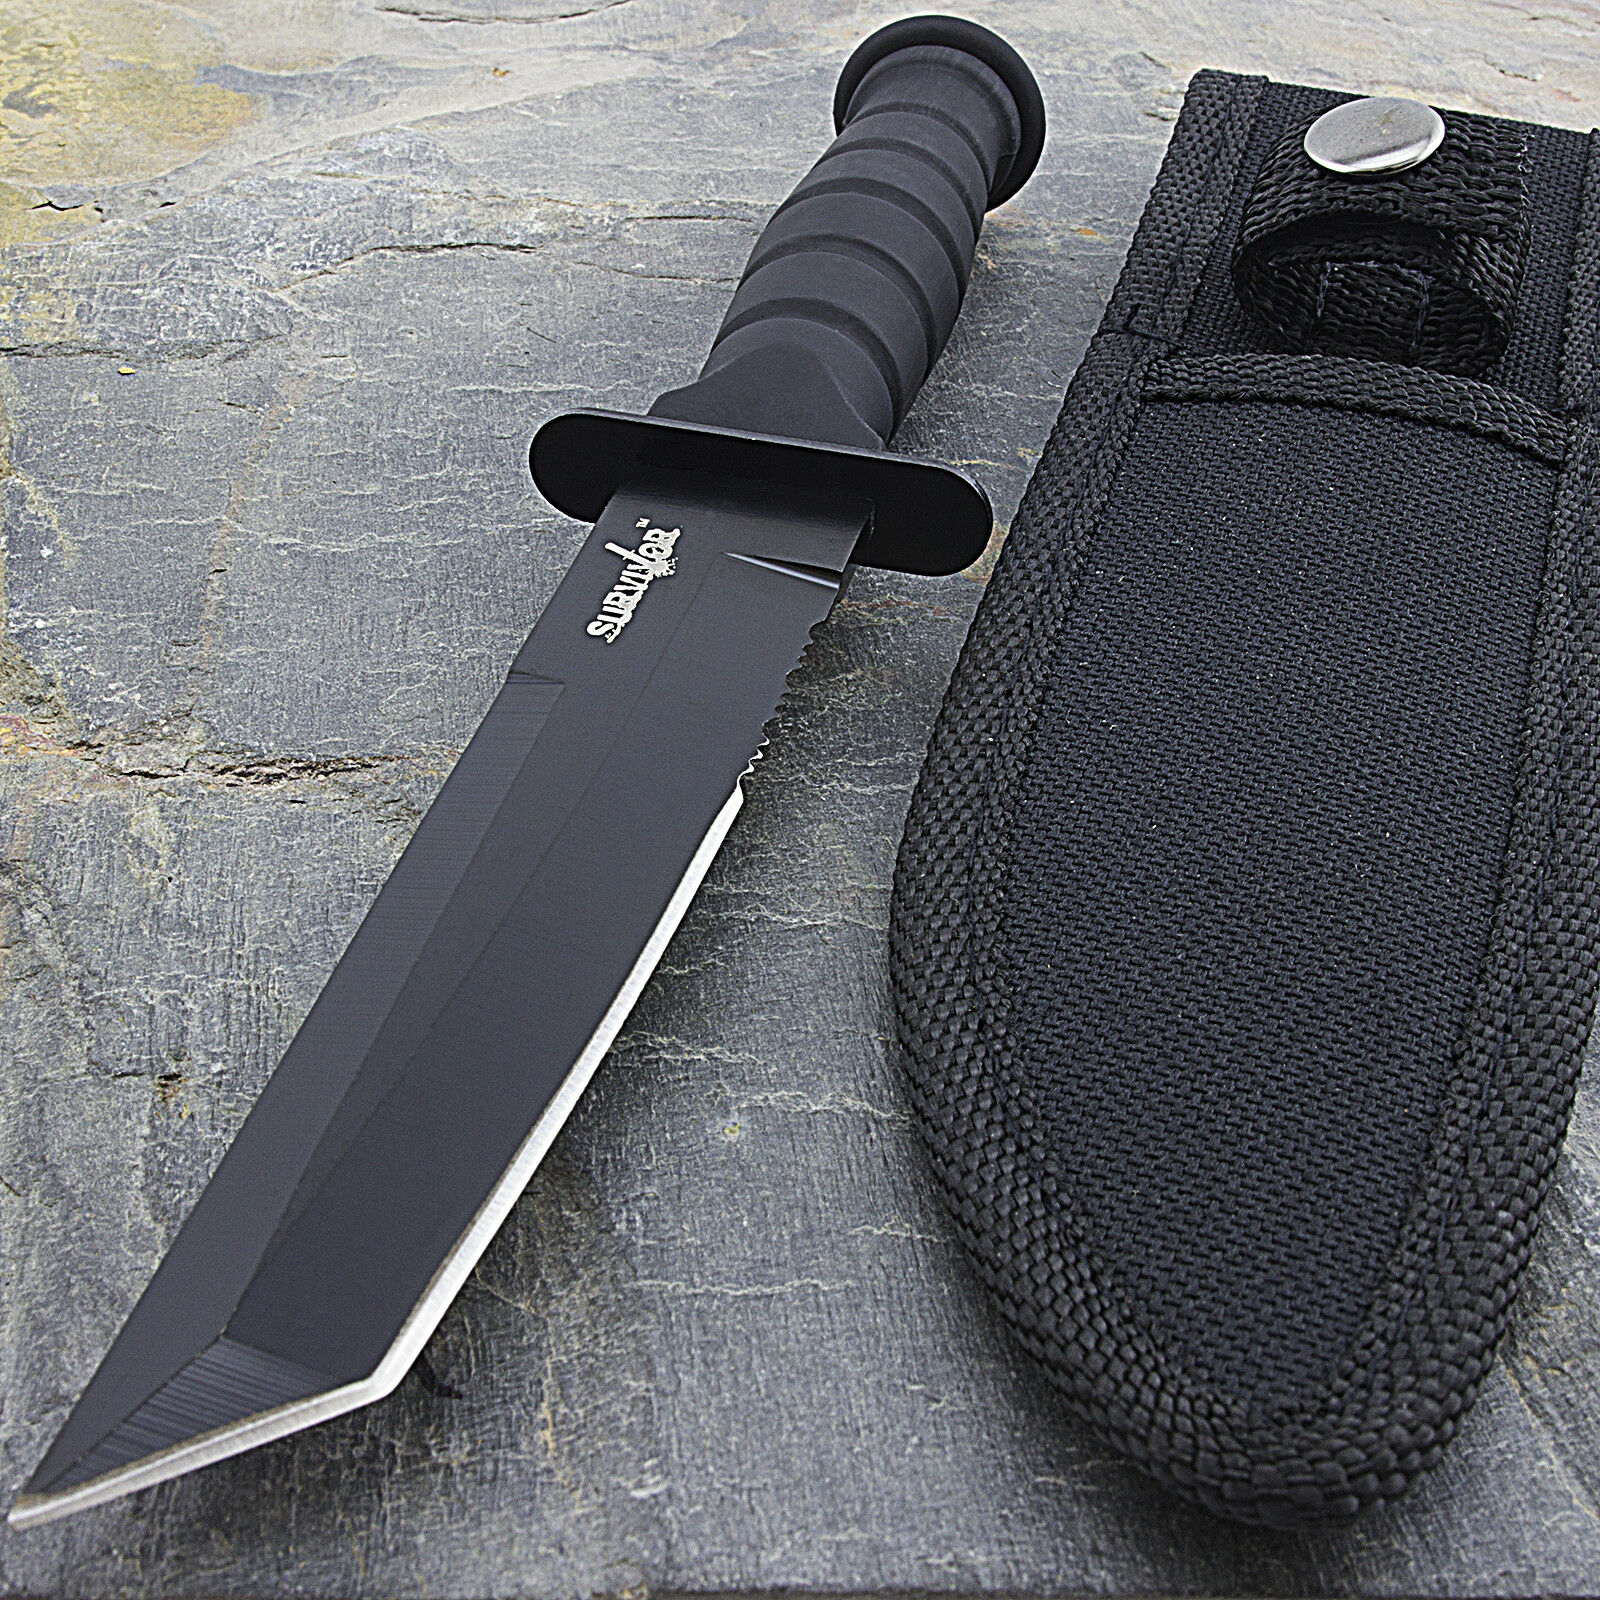 Купить Survivor - 7.5 MILITARY TACTICAL TANTO COMBAT KNIFE w/ SHEATH Survival Hunting Fixed Blade